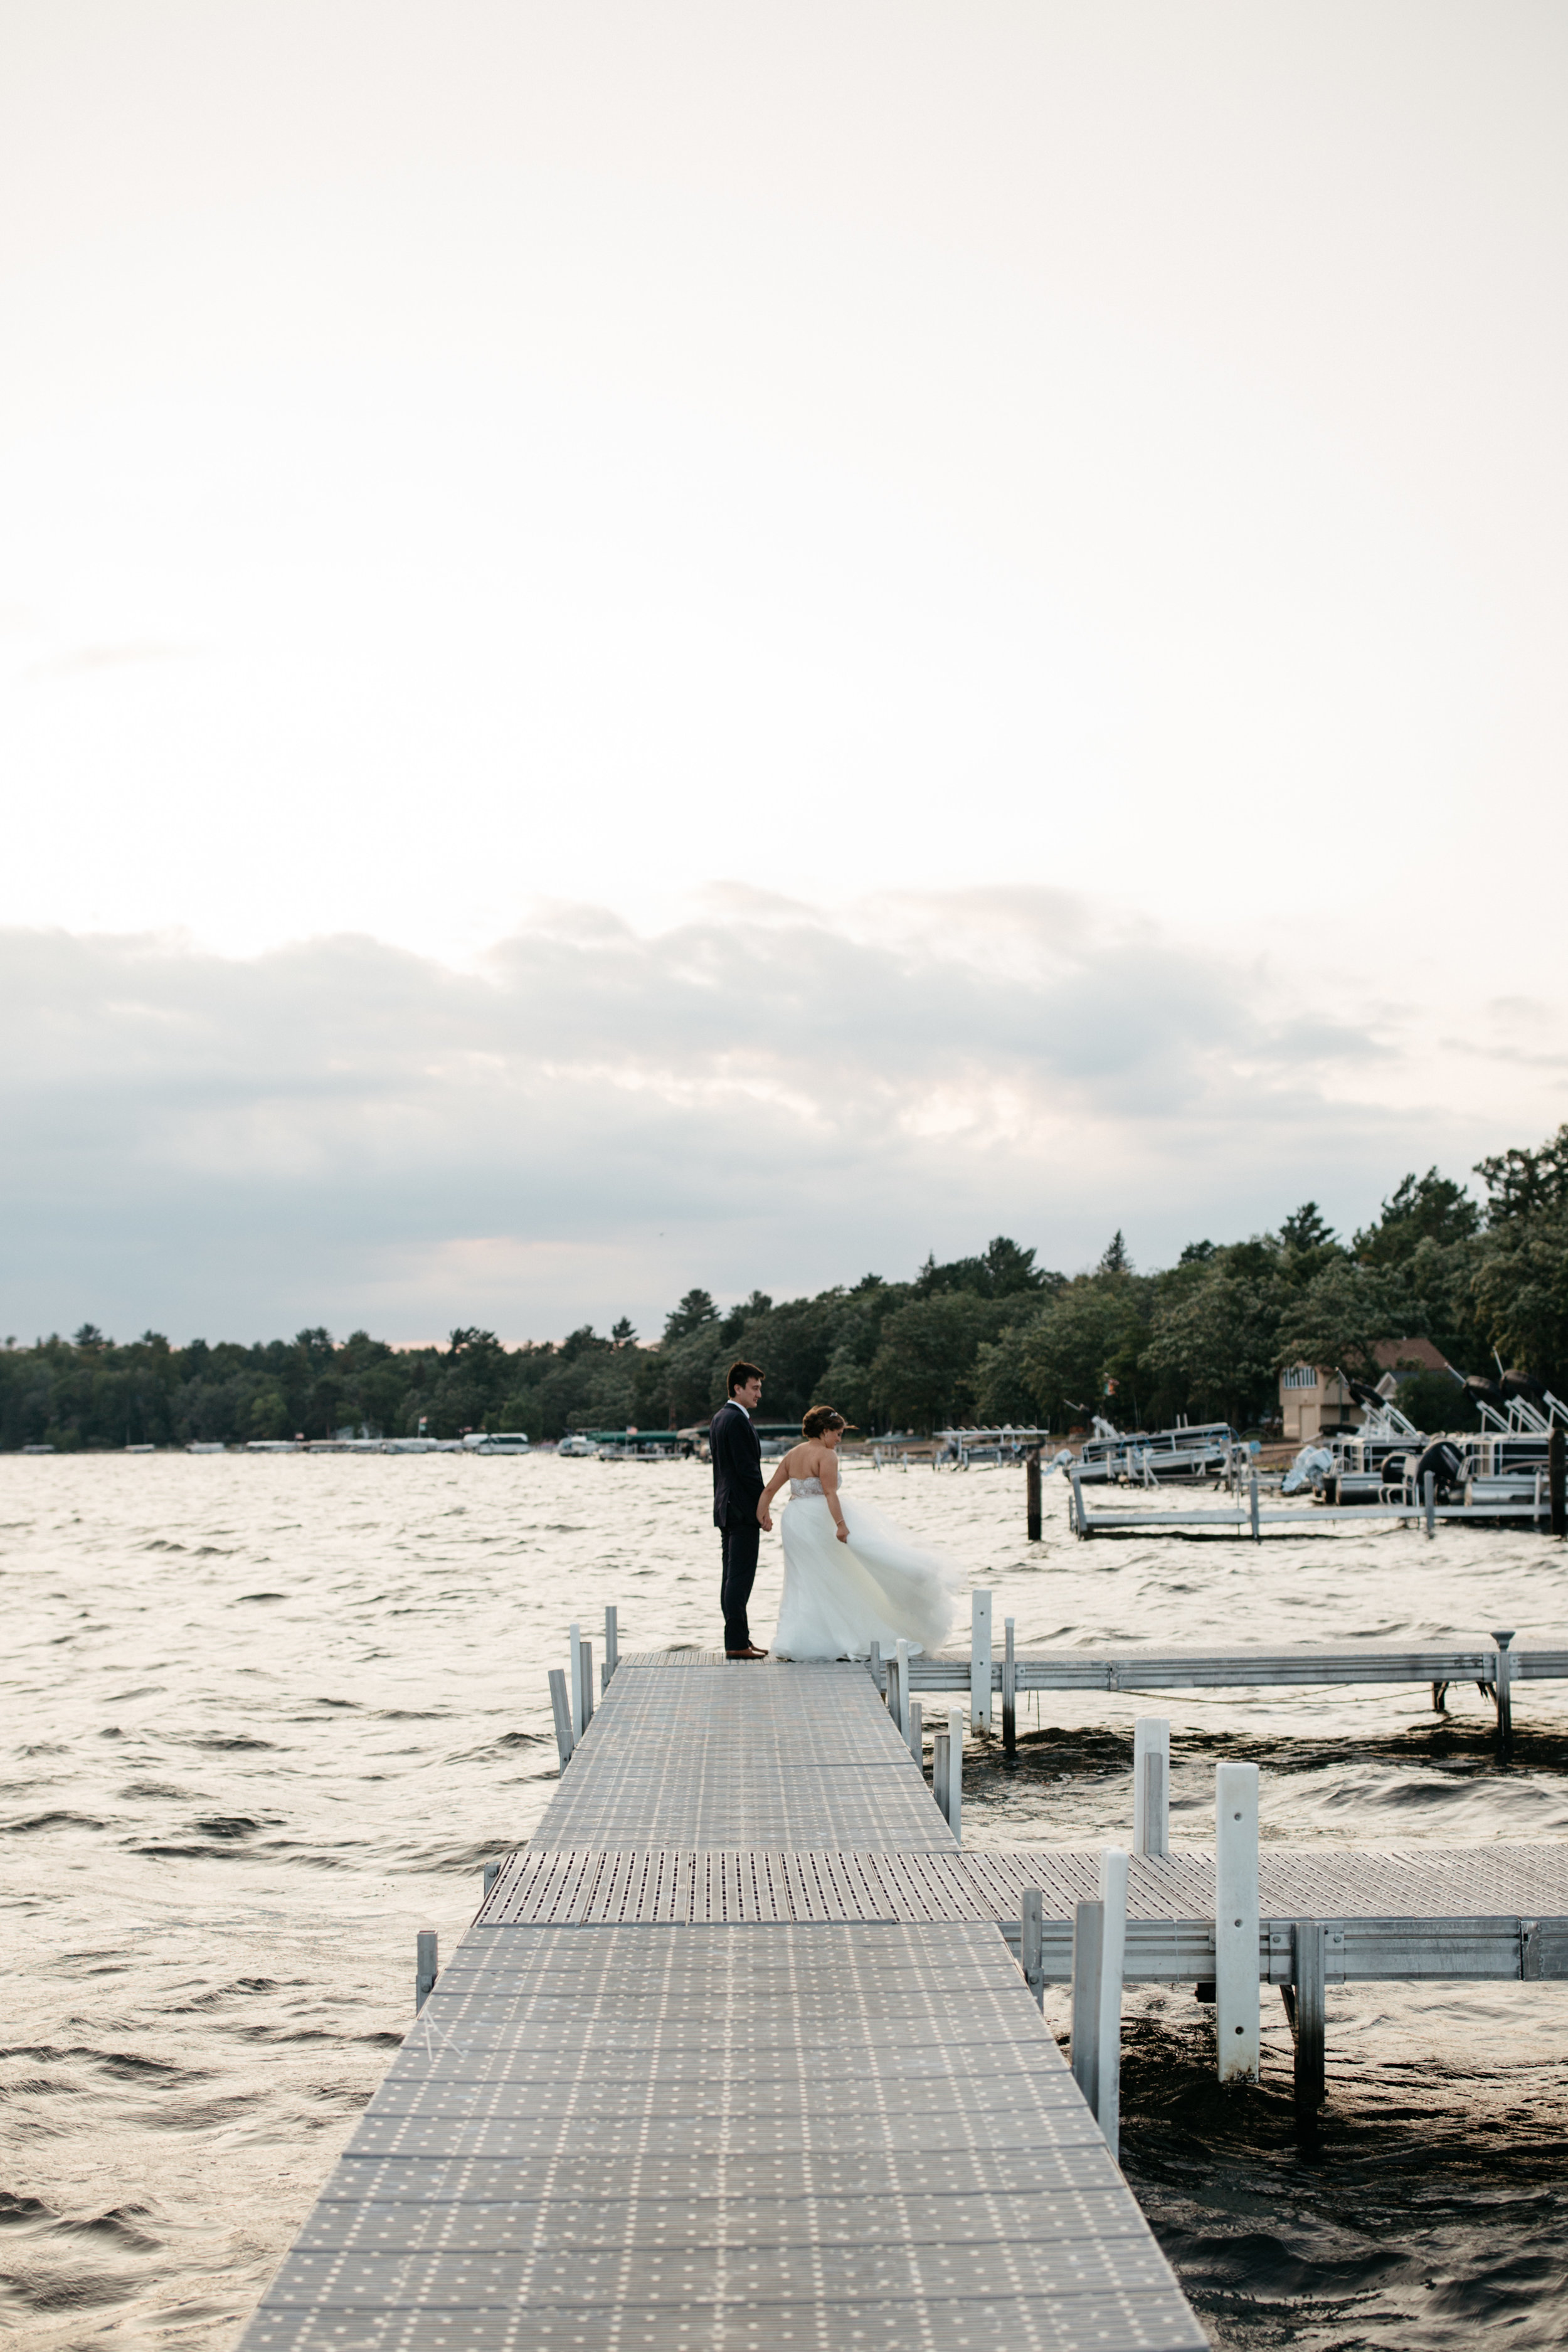 Journalistic style wedding photography by Britt DeZeeuw at Grand VIew Lodge